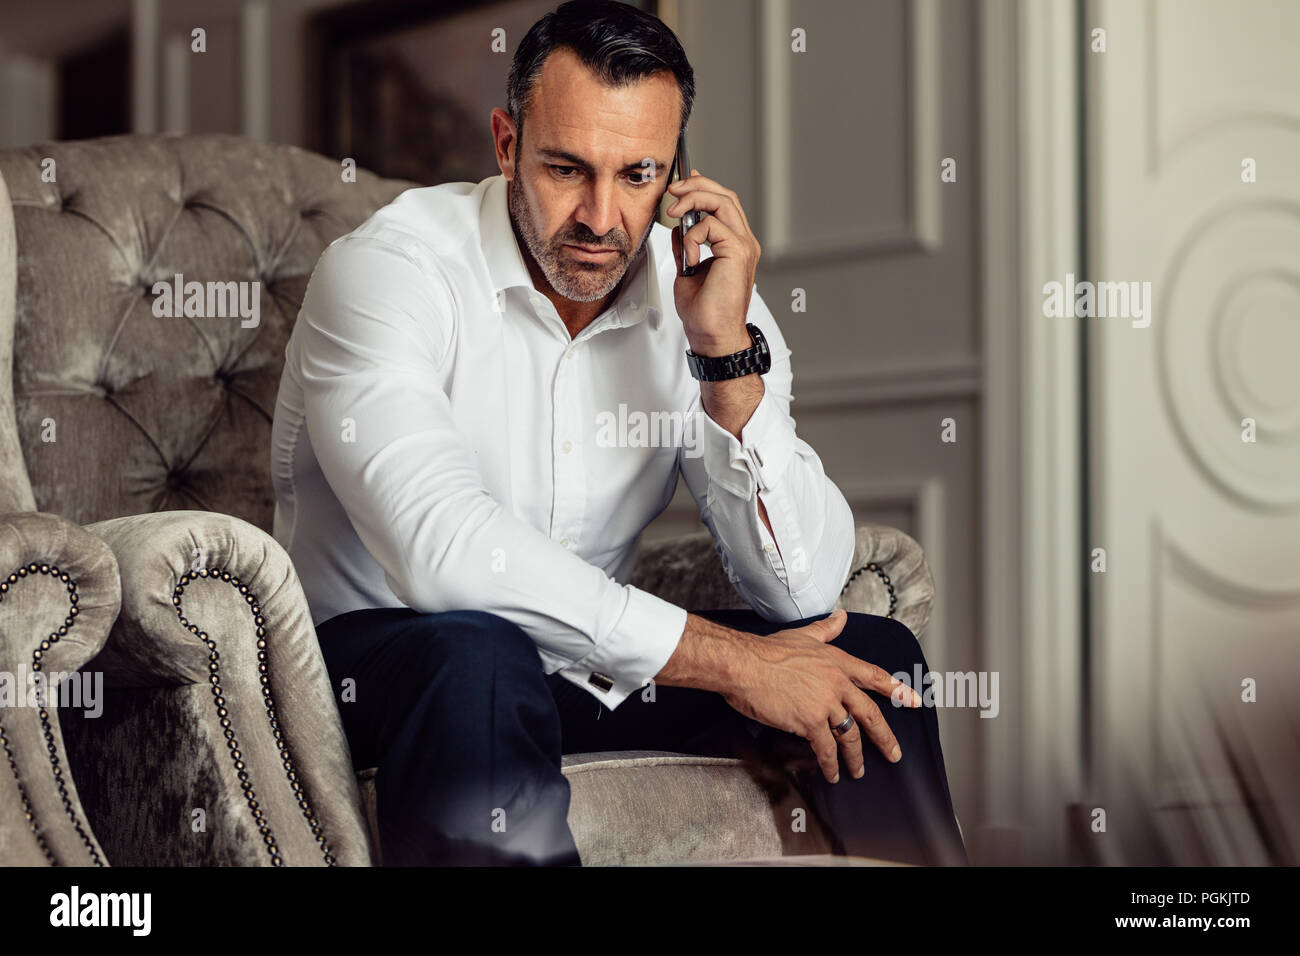 Businessman making a phone call after arriving in the hotel room. Man in formal wear sitting on chair and talking on smartphone. Stock Photo